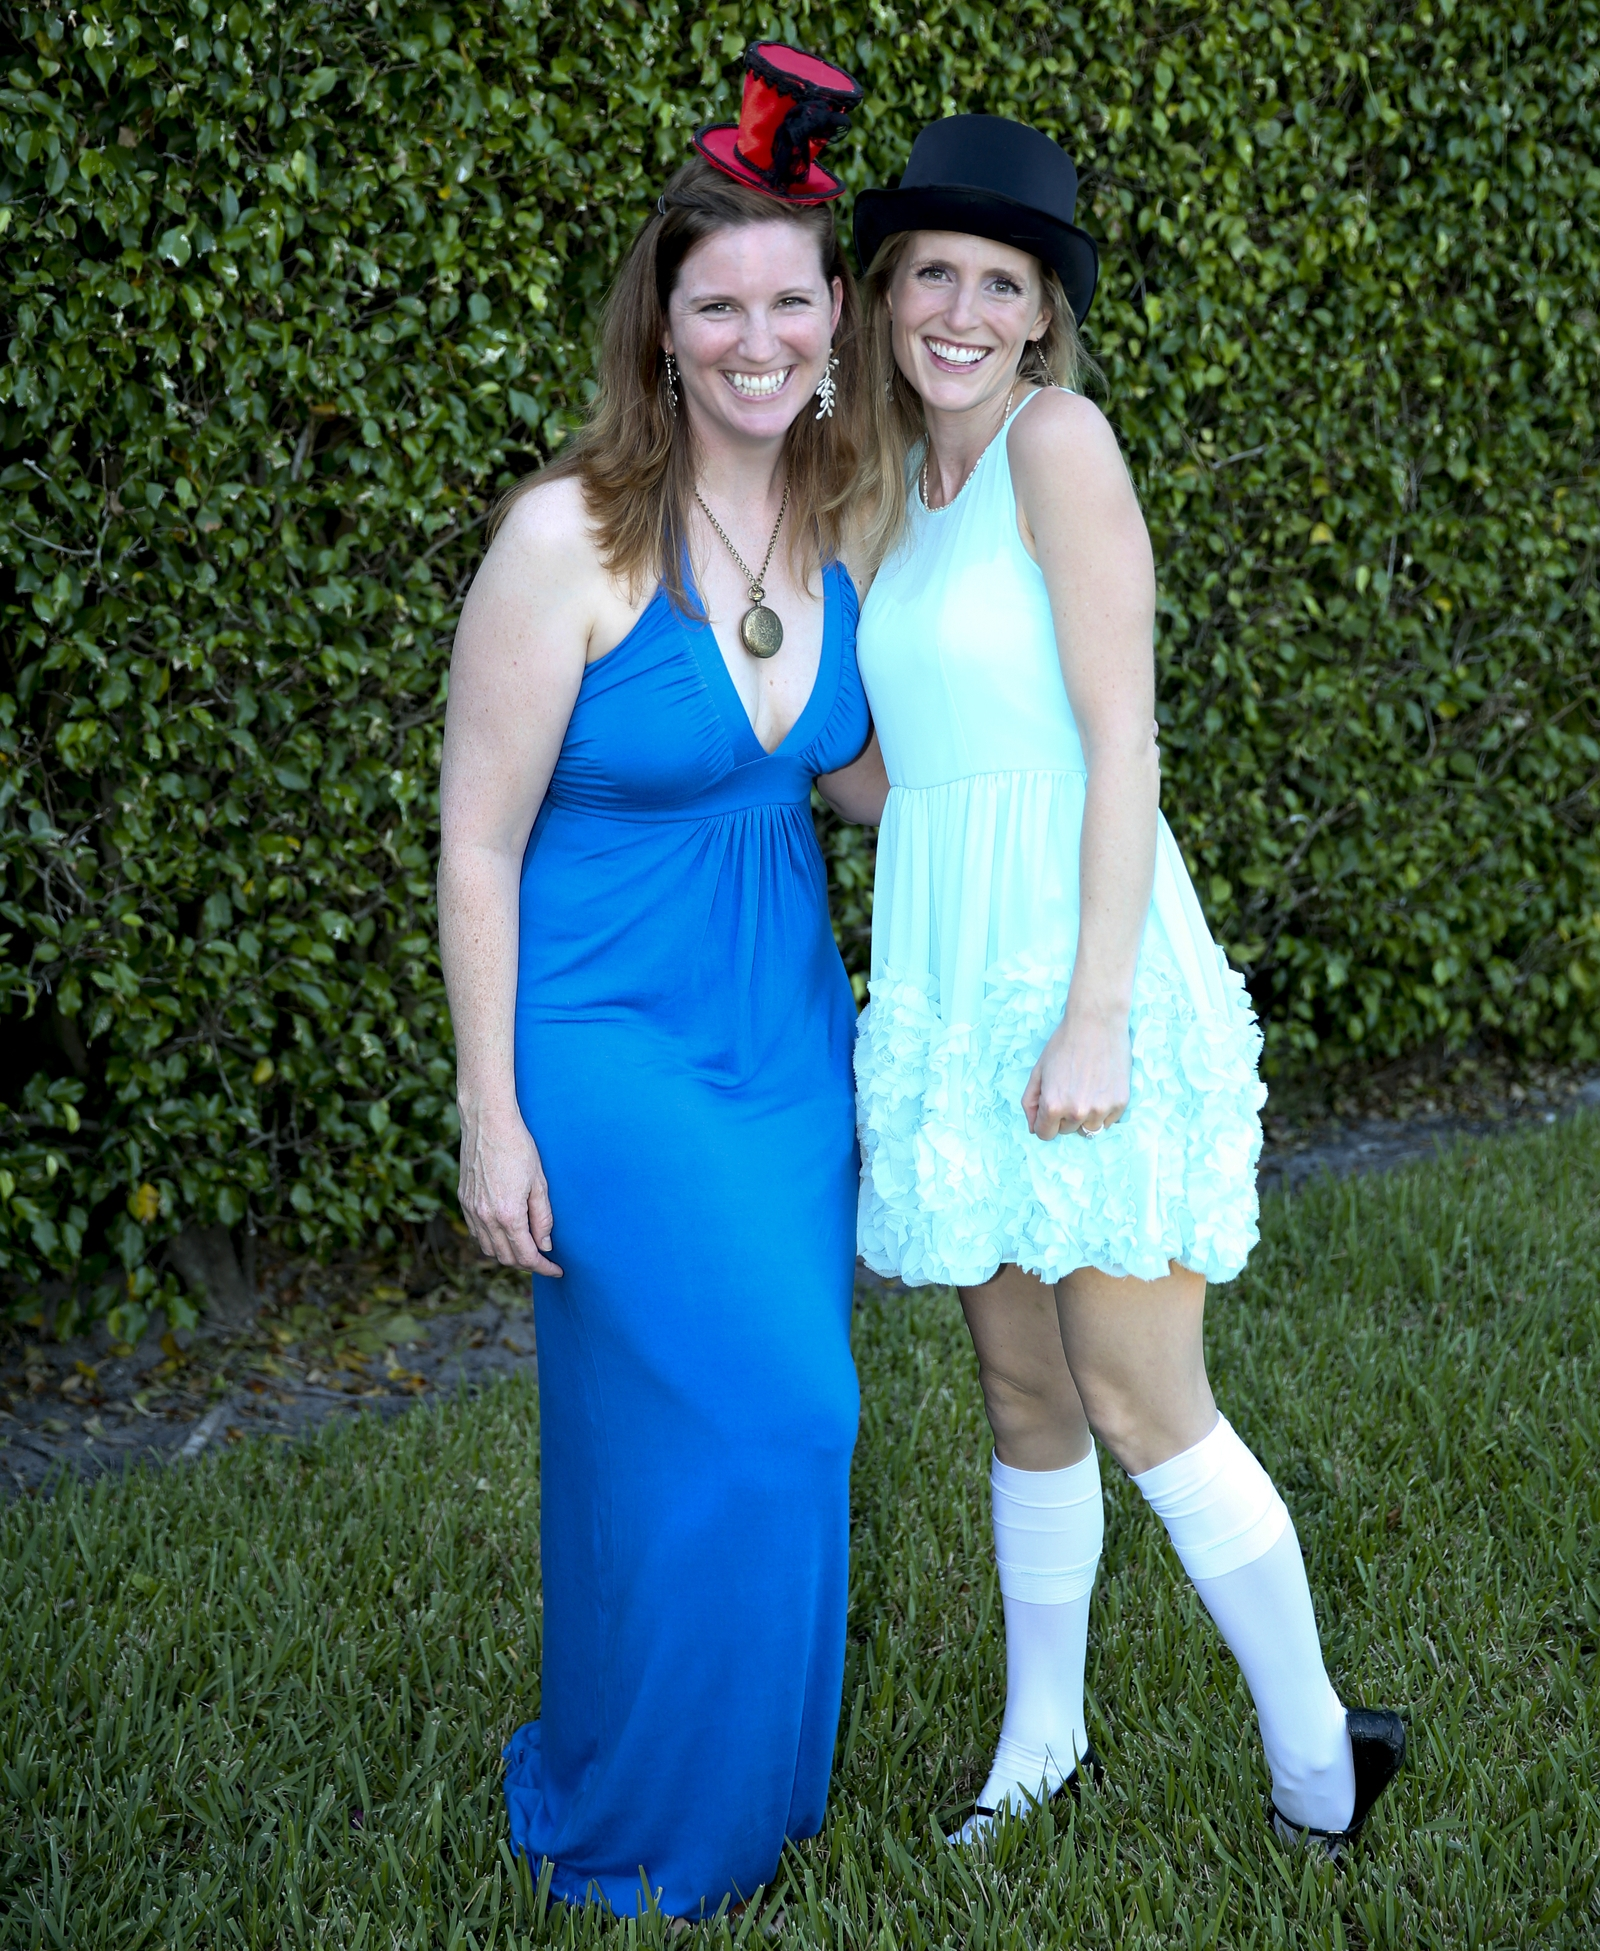 Libby's Mad Hatter themed engagement party